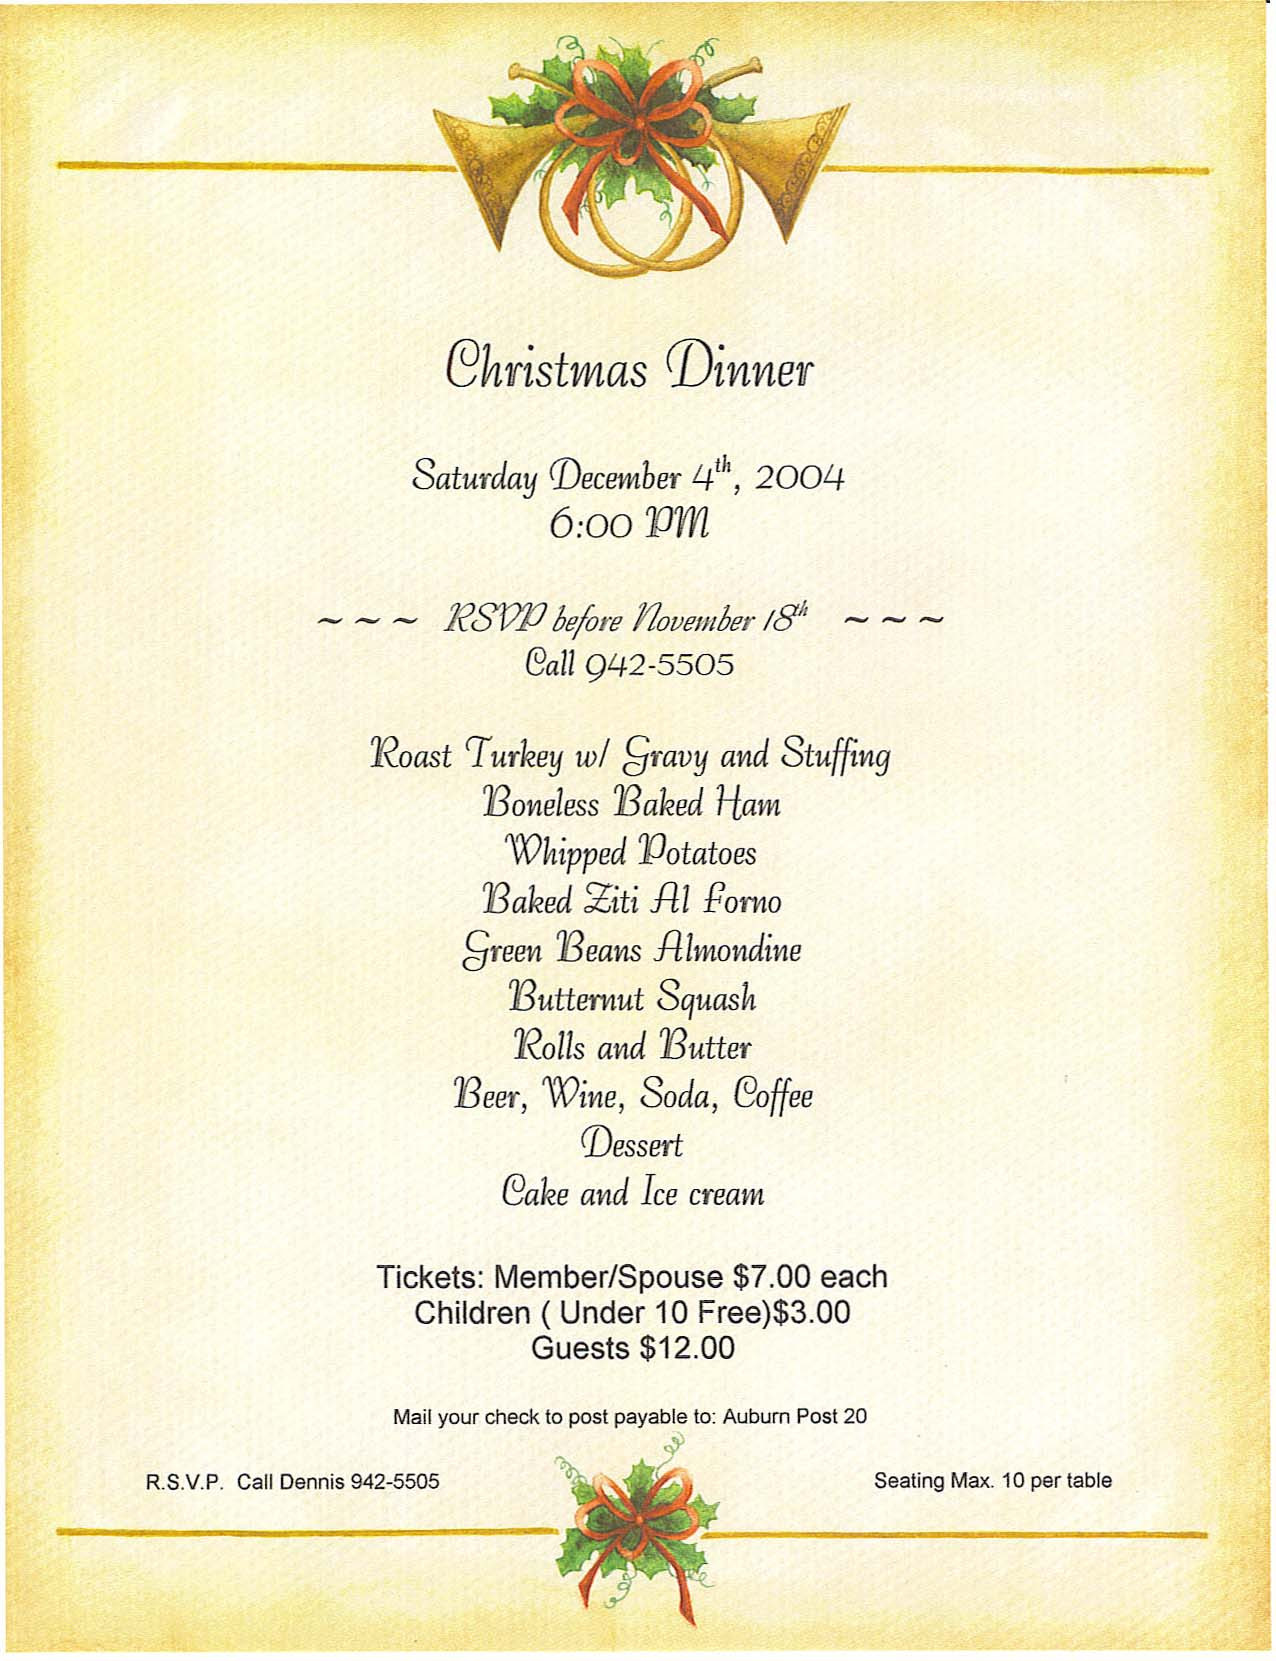 Traditional Christmas Dinner Menu  20 Mouth Watering Christmas Dinner Menu